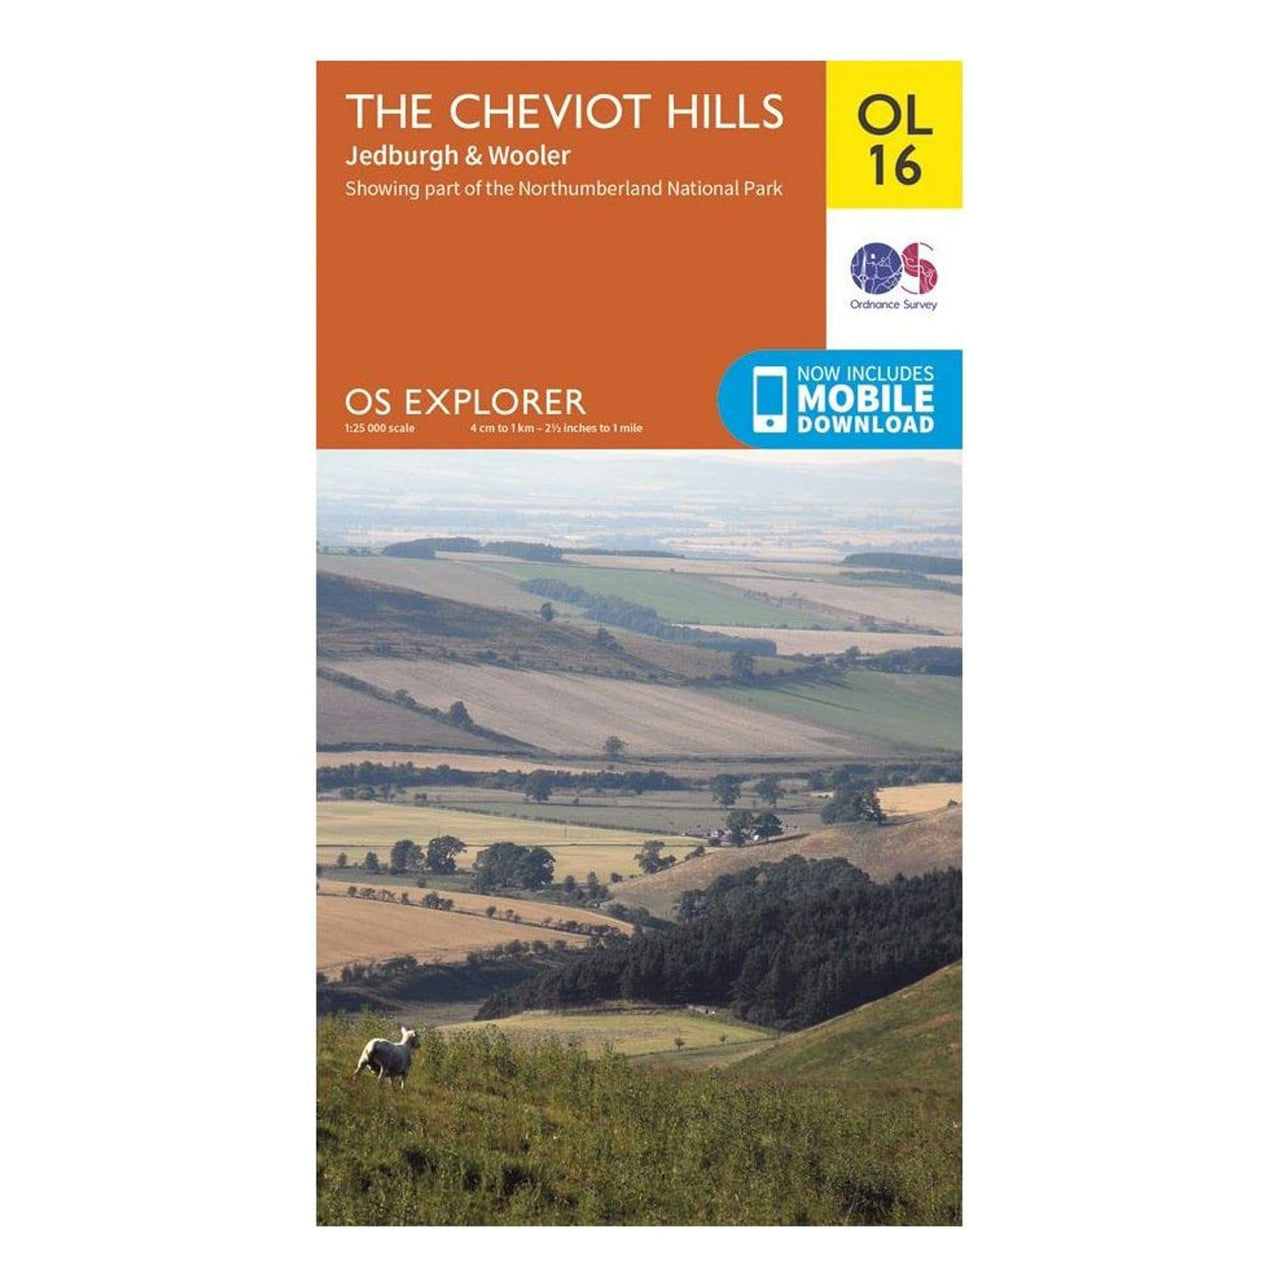 OS Explorer Maps: The Cheviot Hills